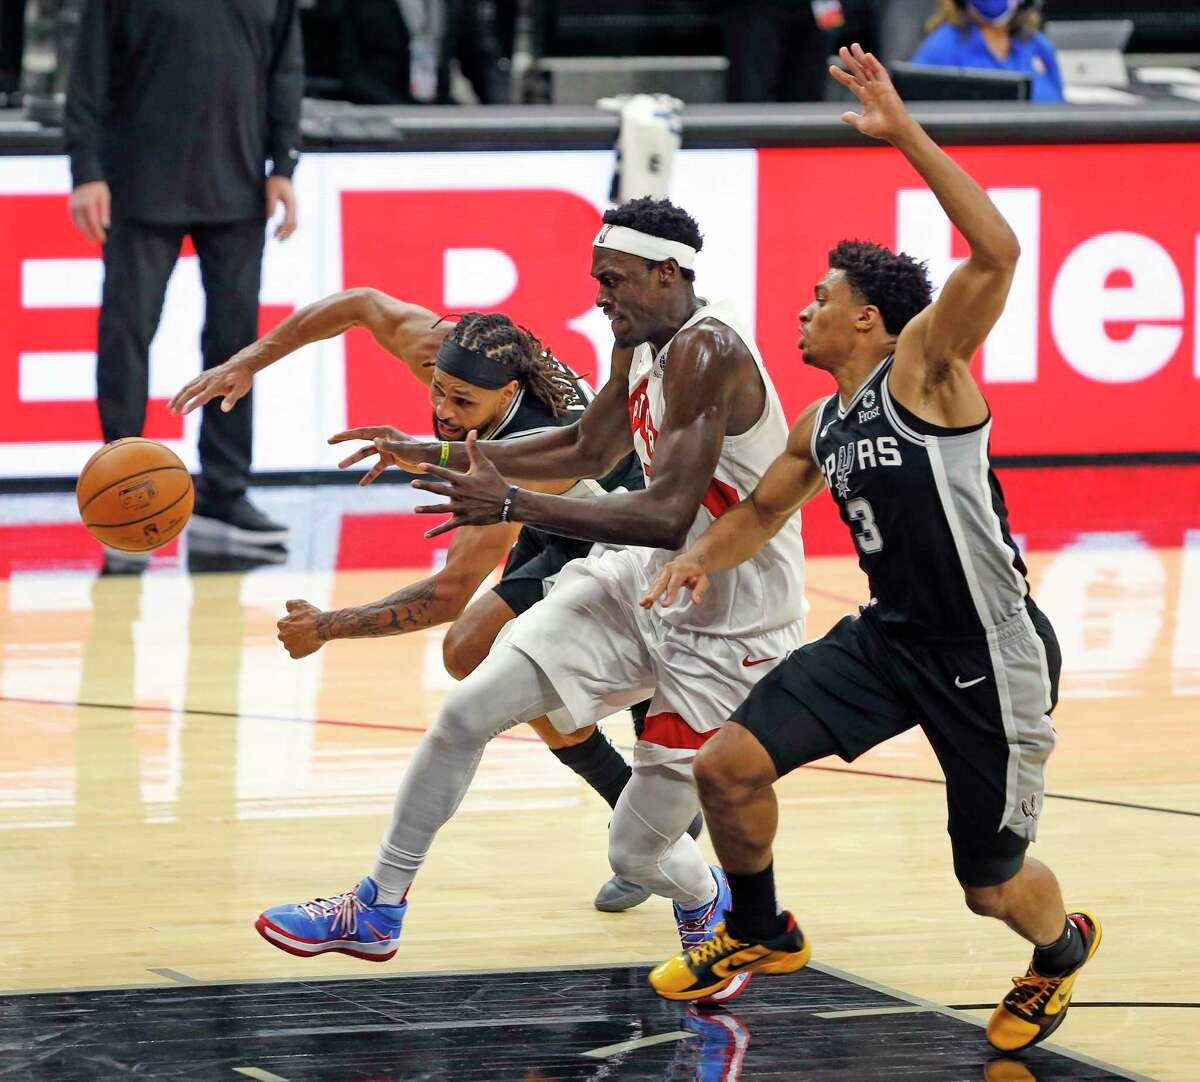 San Antonio Spurs guard Patty Mills (8) and guard Keldon Johnson (3) prevent Pascal Siakam #43 of the Toronto Raptors from scoring in closing minute of play. Spurs v Raptors at AT&T Center on Saturday, Dec. 26, 2020.